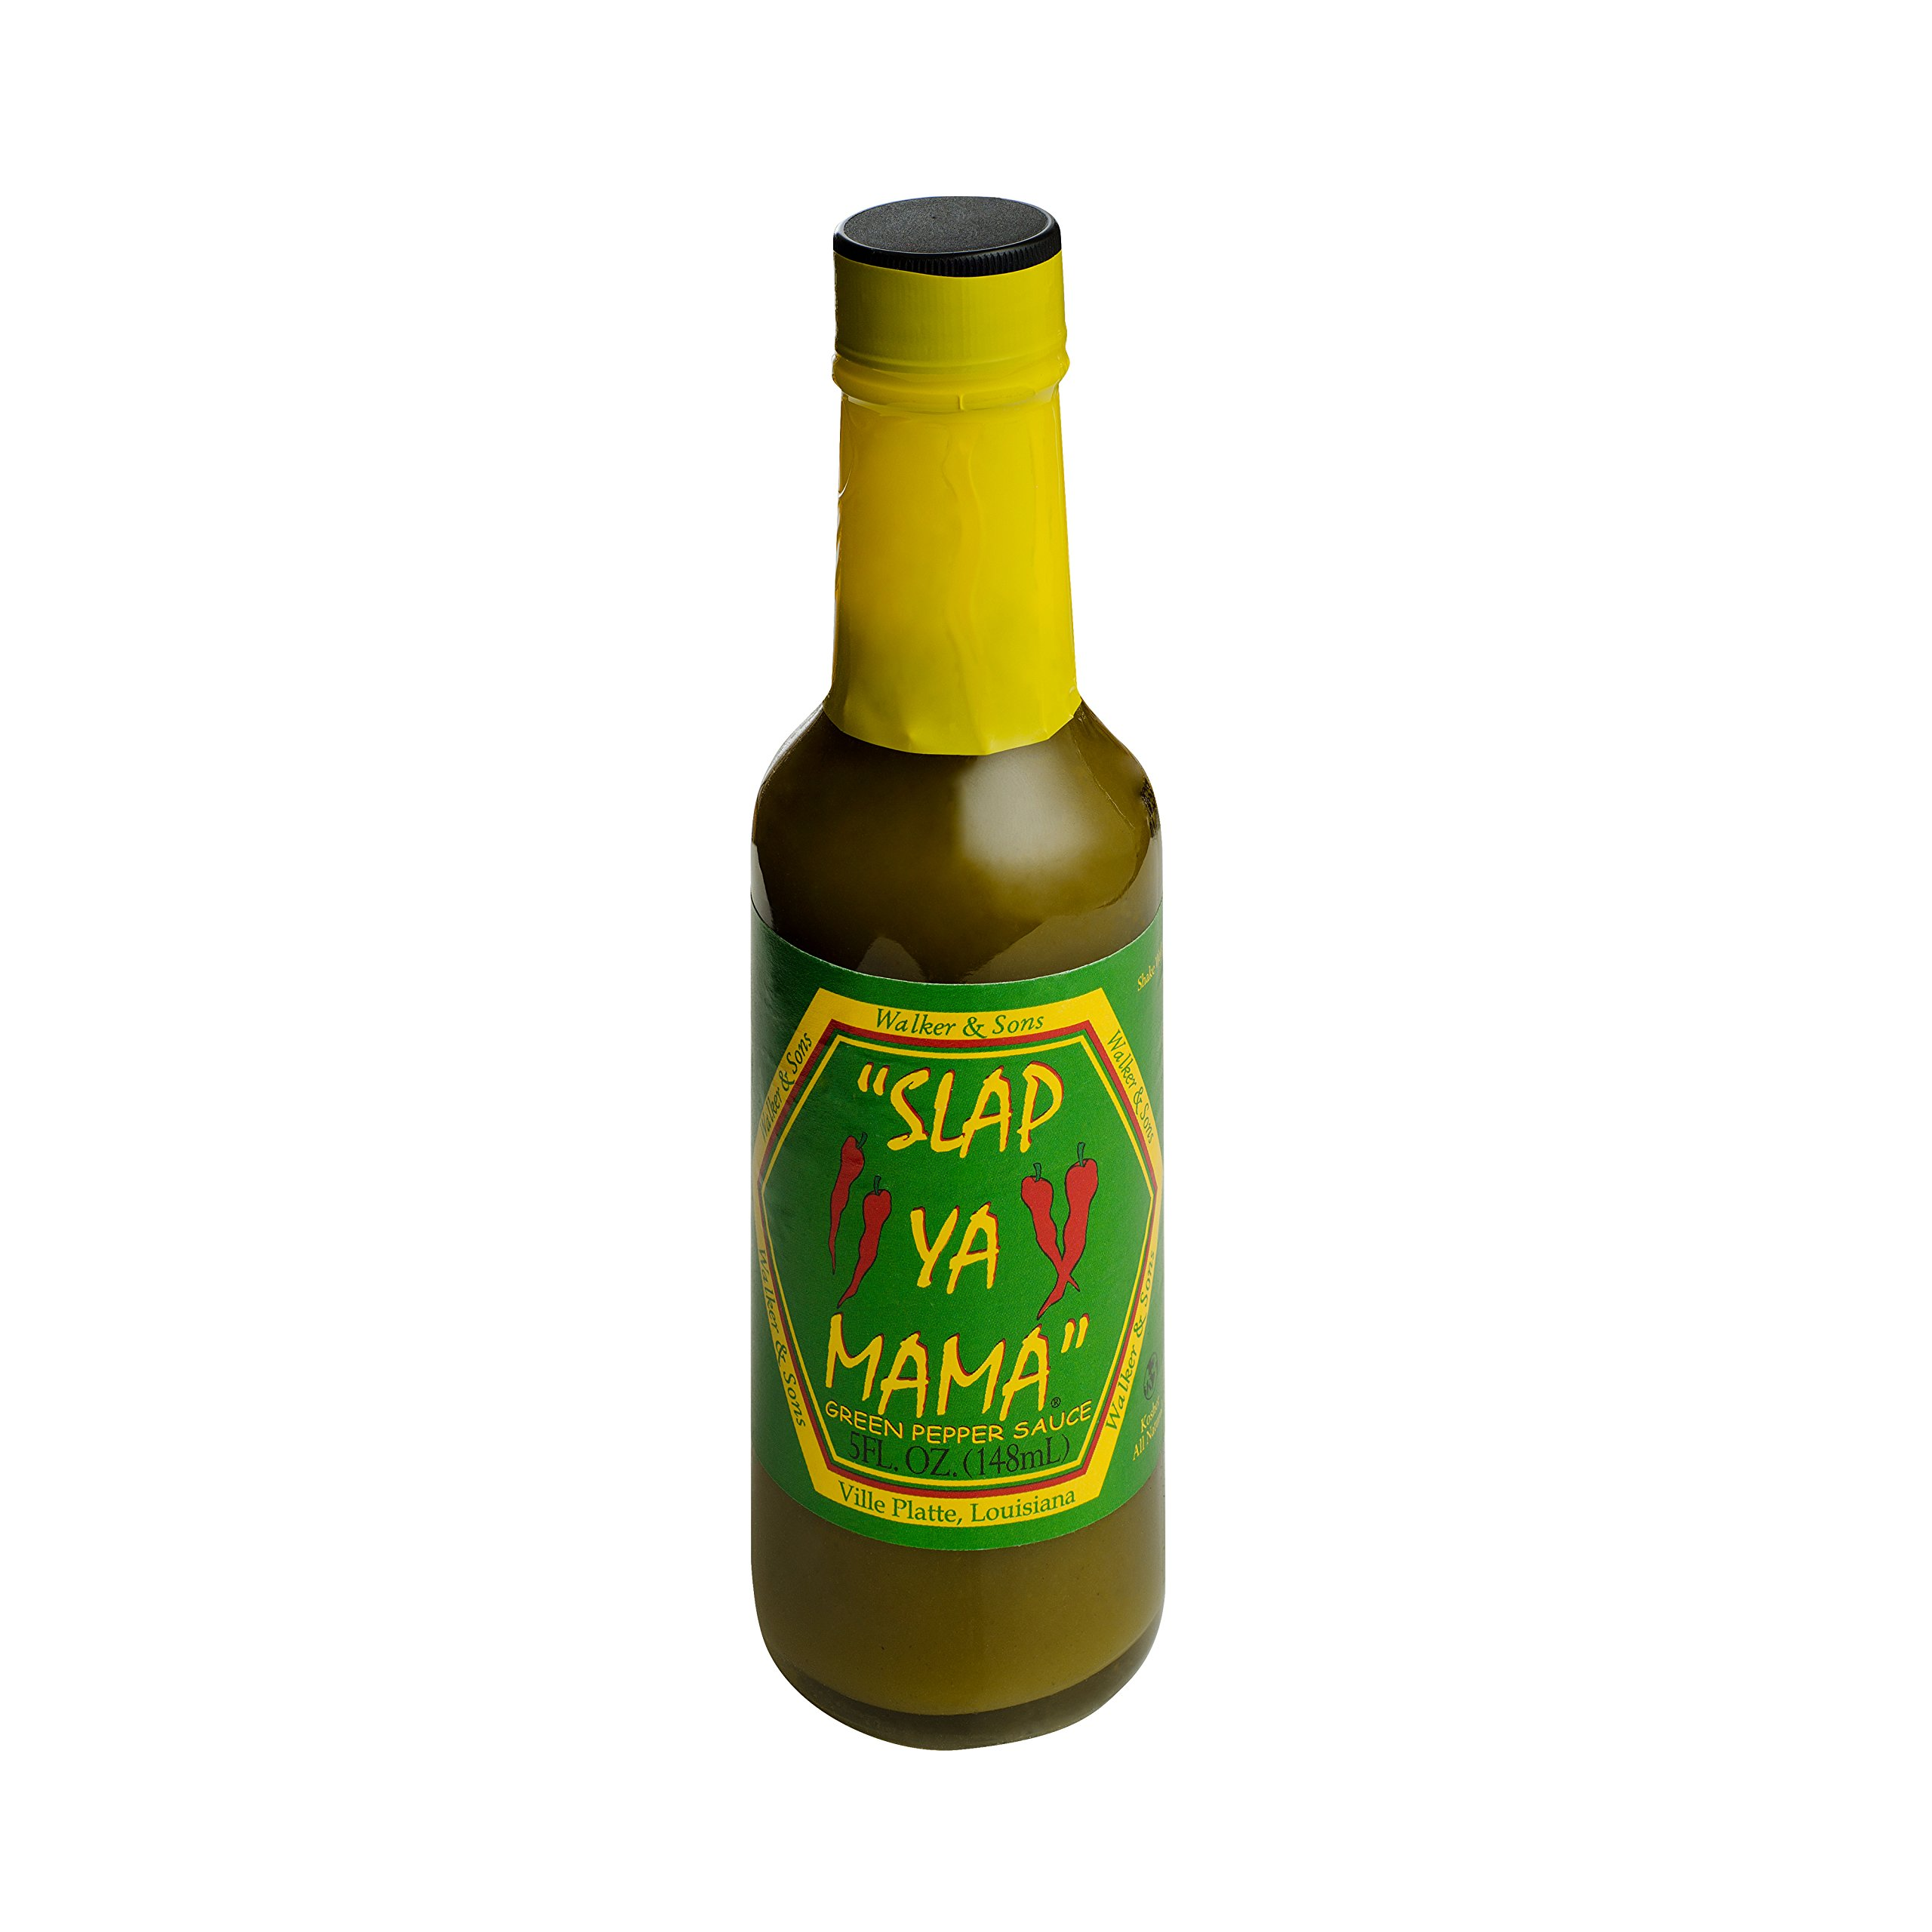 Slap Ya Mama All Natural Louisiana Style Hot Sauce, Jalapeno Flavor, 5 Ounce Bottle, Pack of 1